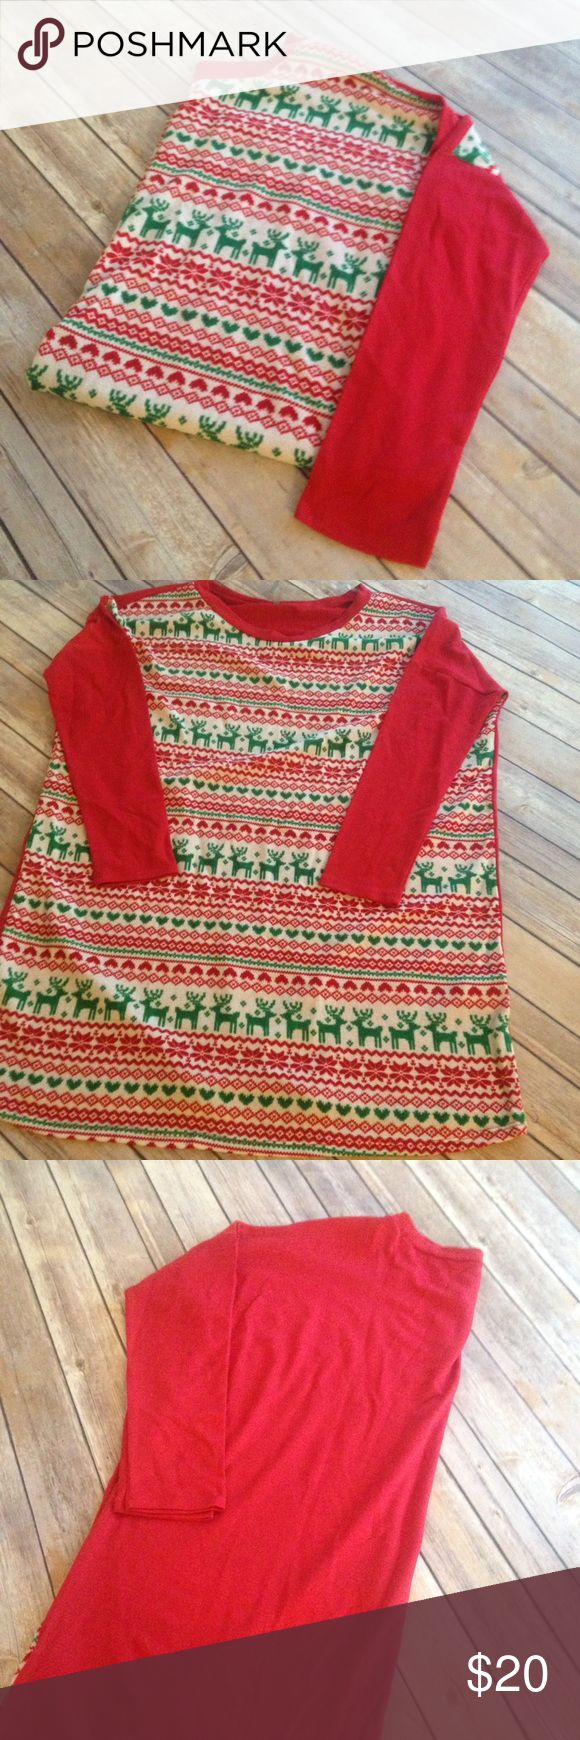 NWOT Red Lolly Holiday Reindeer Tunic Size Large Red Lolly Christmas Tunic with Reindeer. Size L. Cute Tunic with holiday print on front. Solid red arms and back. Never worn. NWOT. Red Lolly Tops Tunics